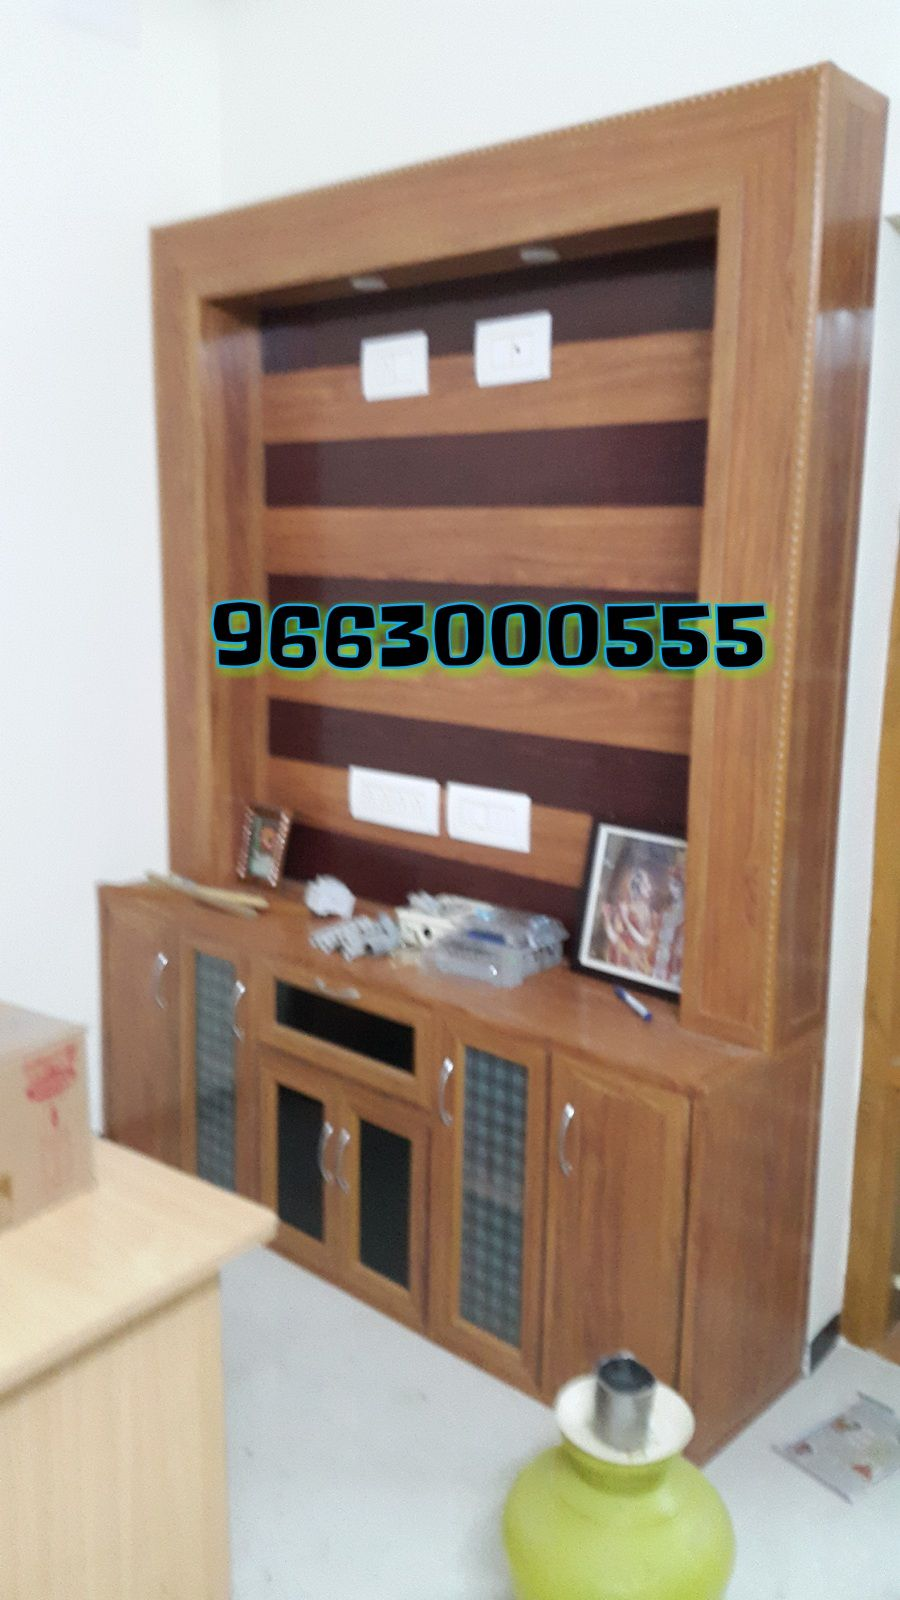 Pvc Tv Showcase Pvc Tv Cabinets Tv Unit Pvc Tv Online